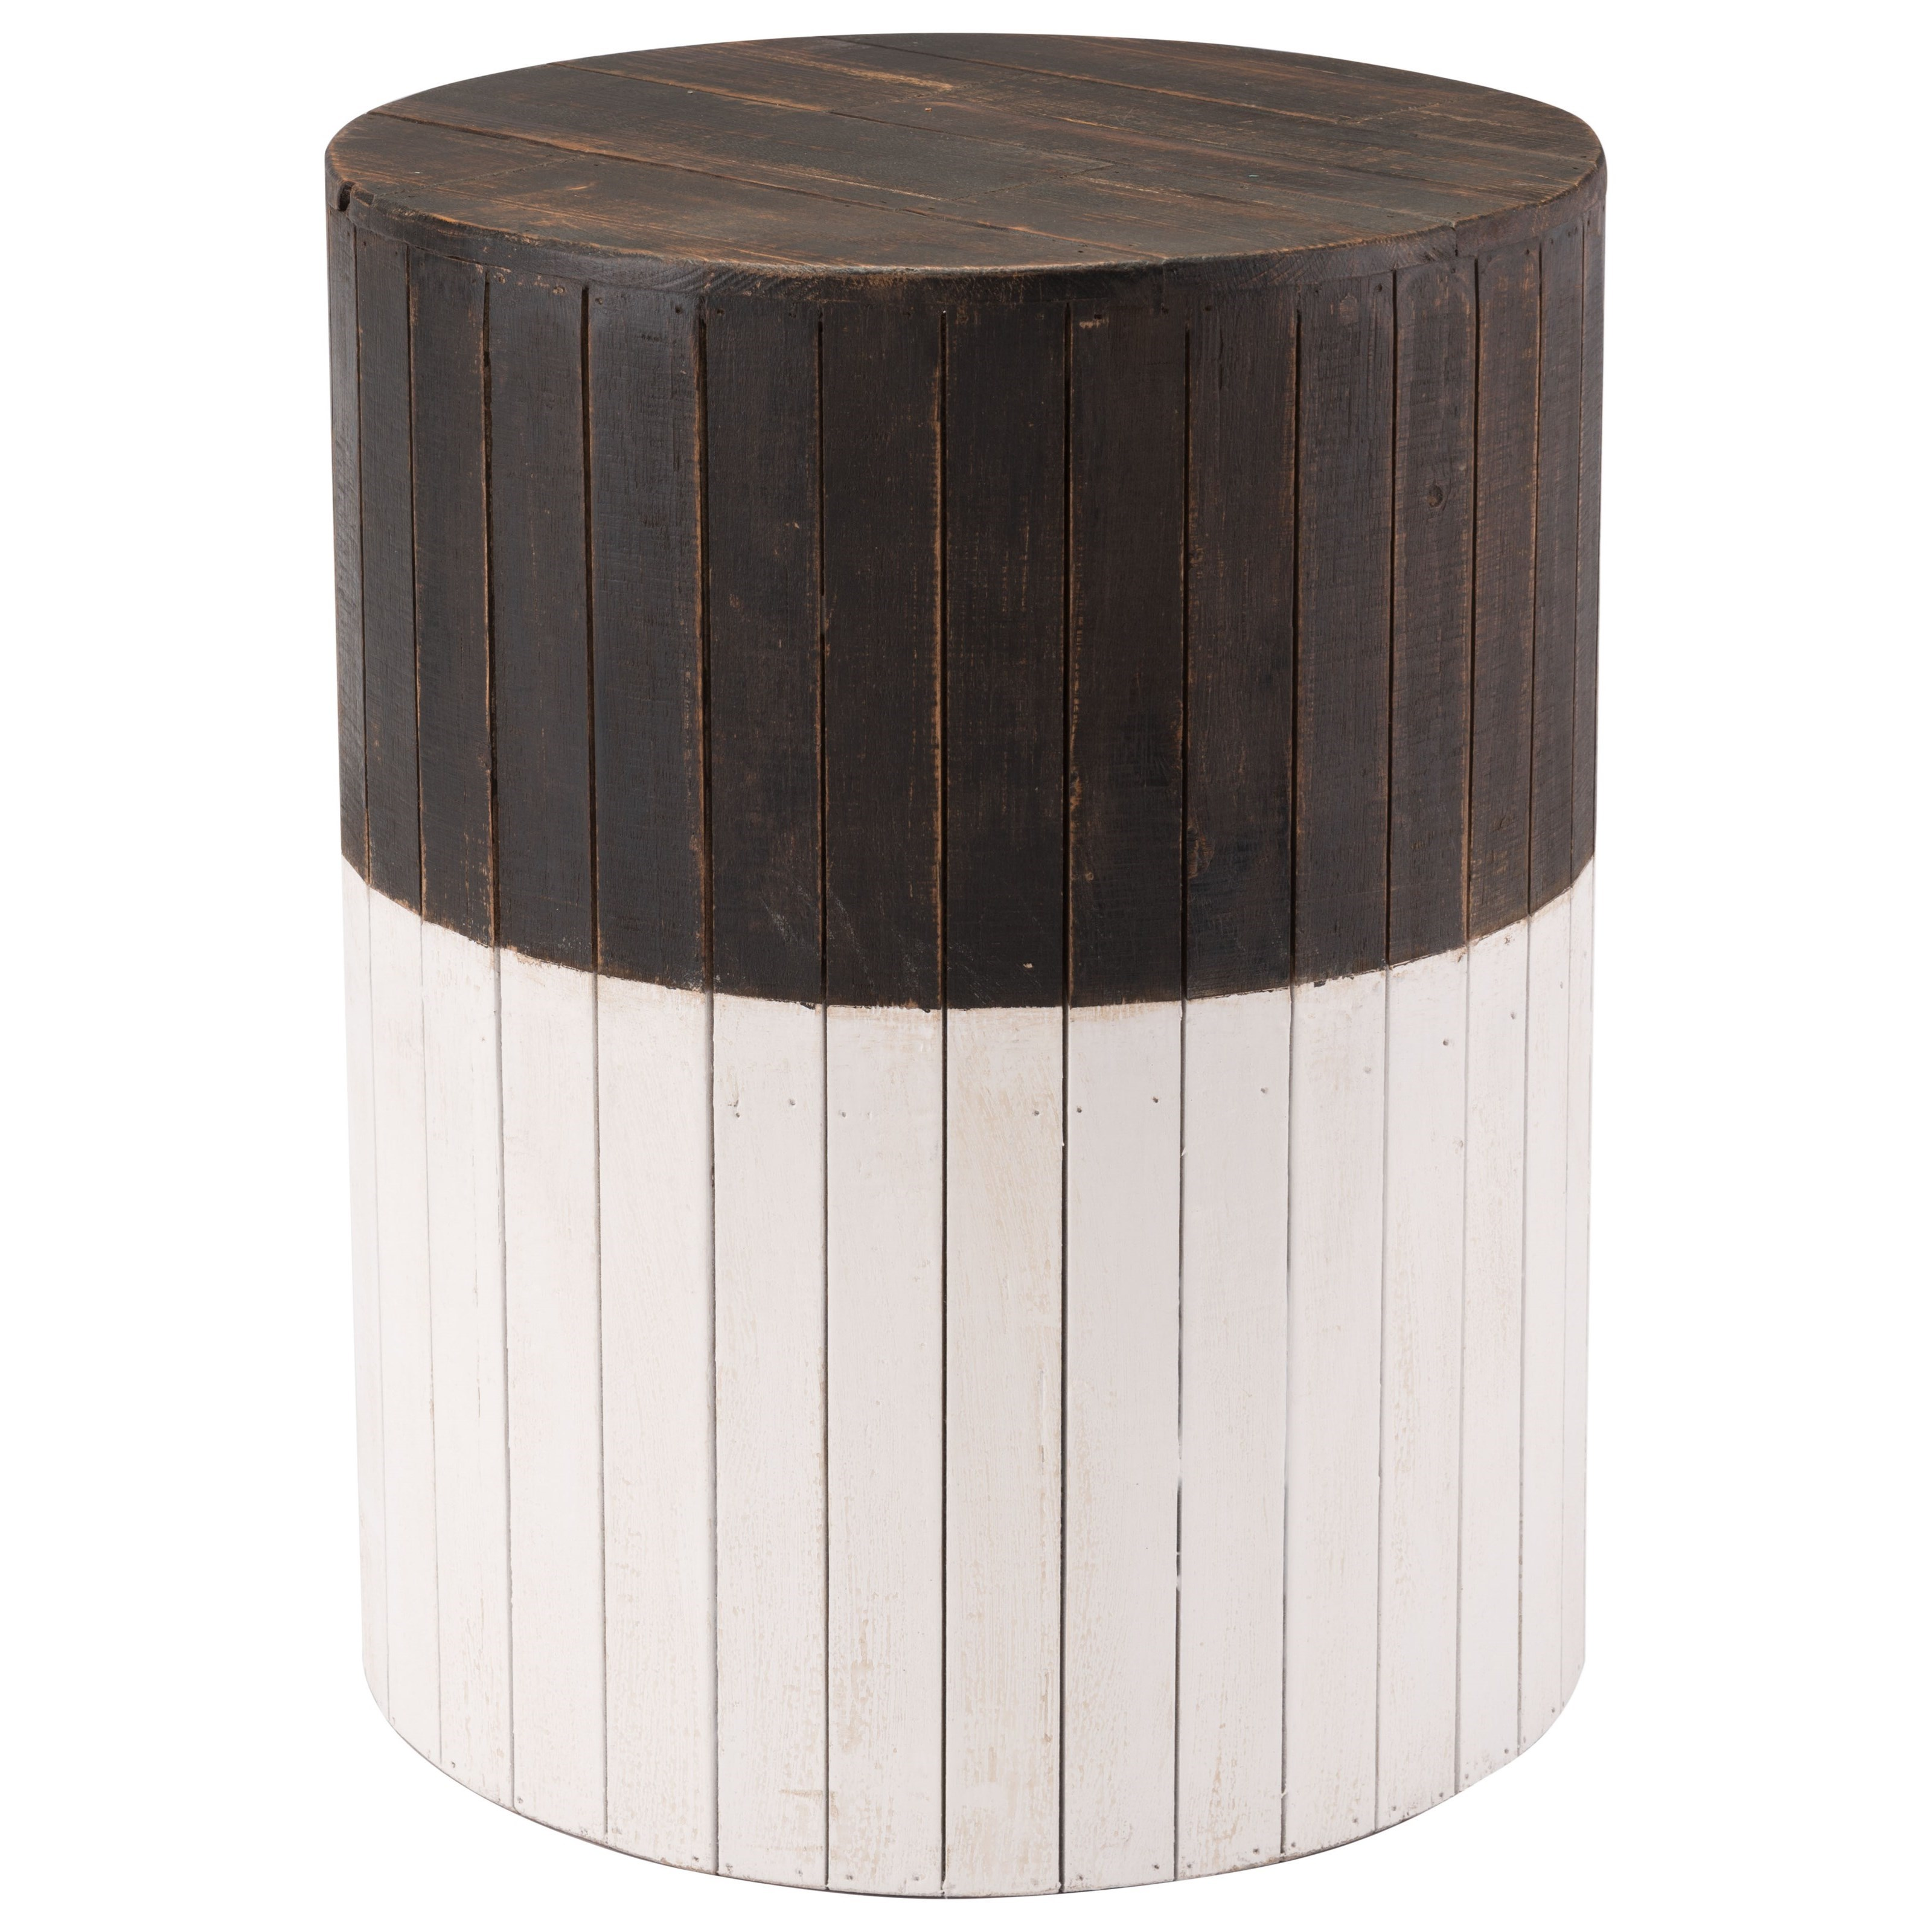 Zuo Accent Tables Wooden Round Garden Seat - Item Number: A10605